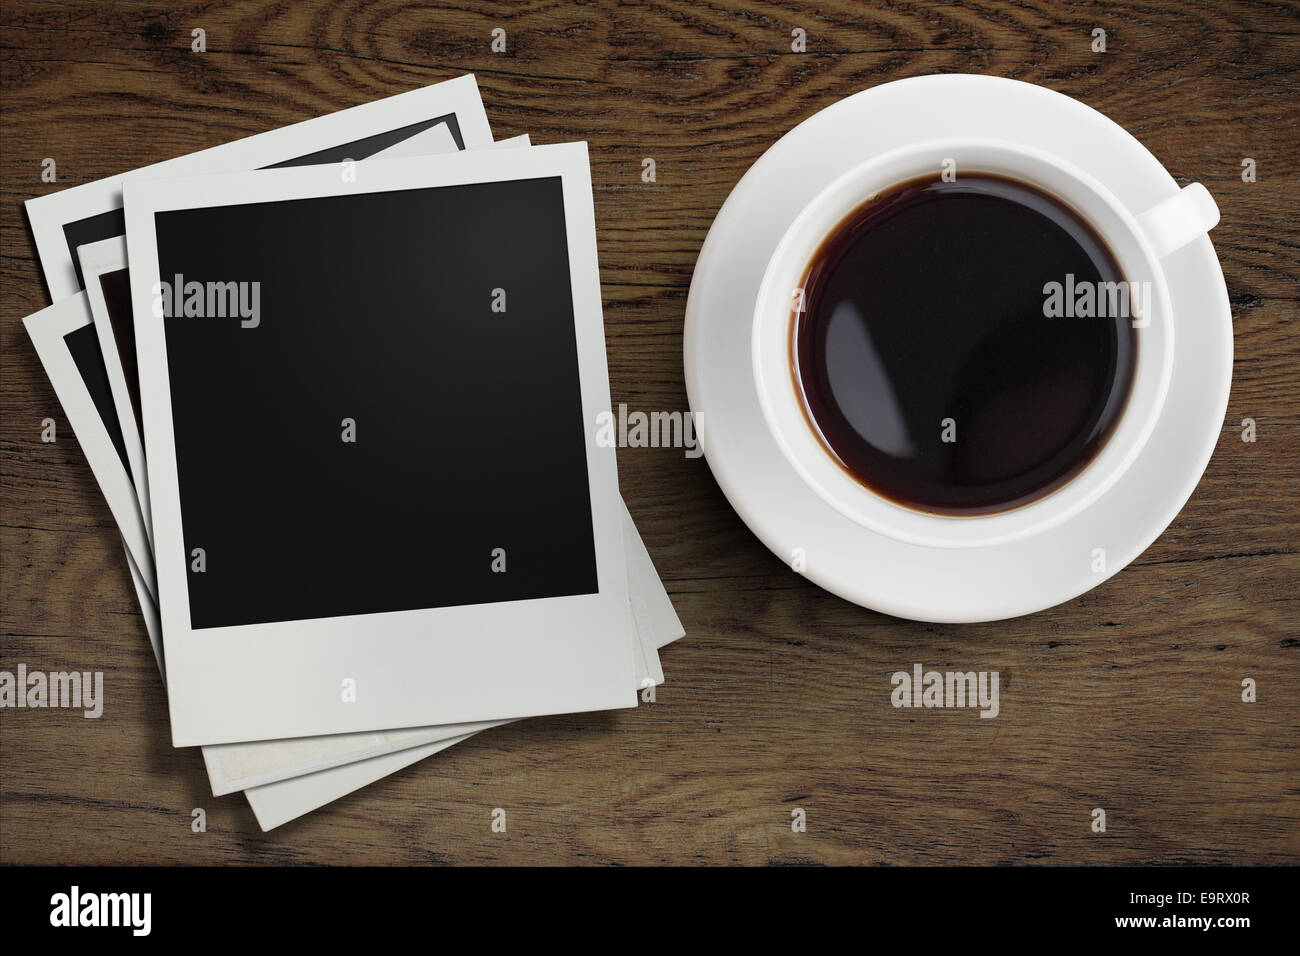 Coffee cup frames - Stock Photo Coffee Cup And Polaroid Photo Frames On Wooden Table Top View